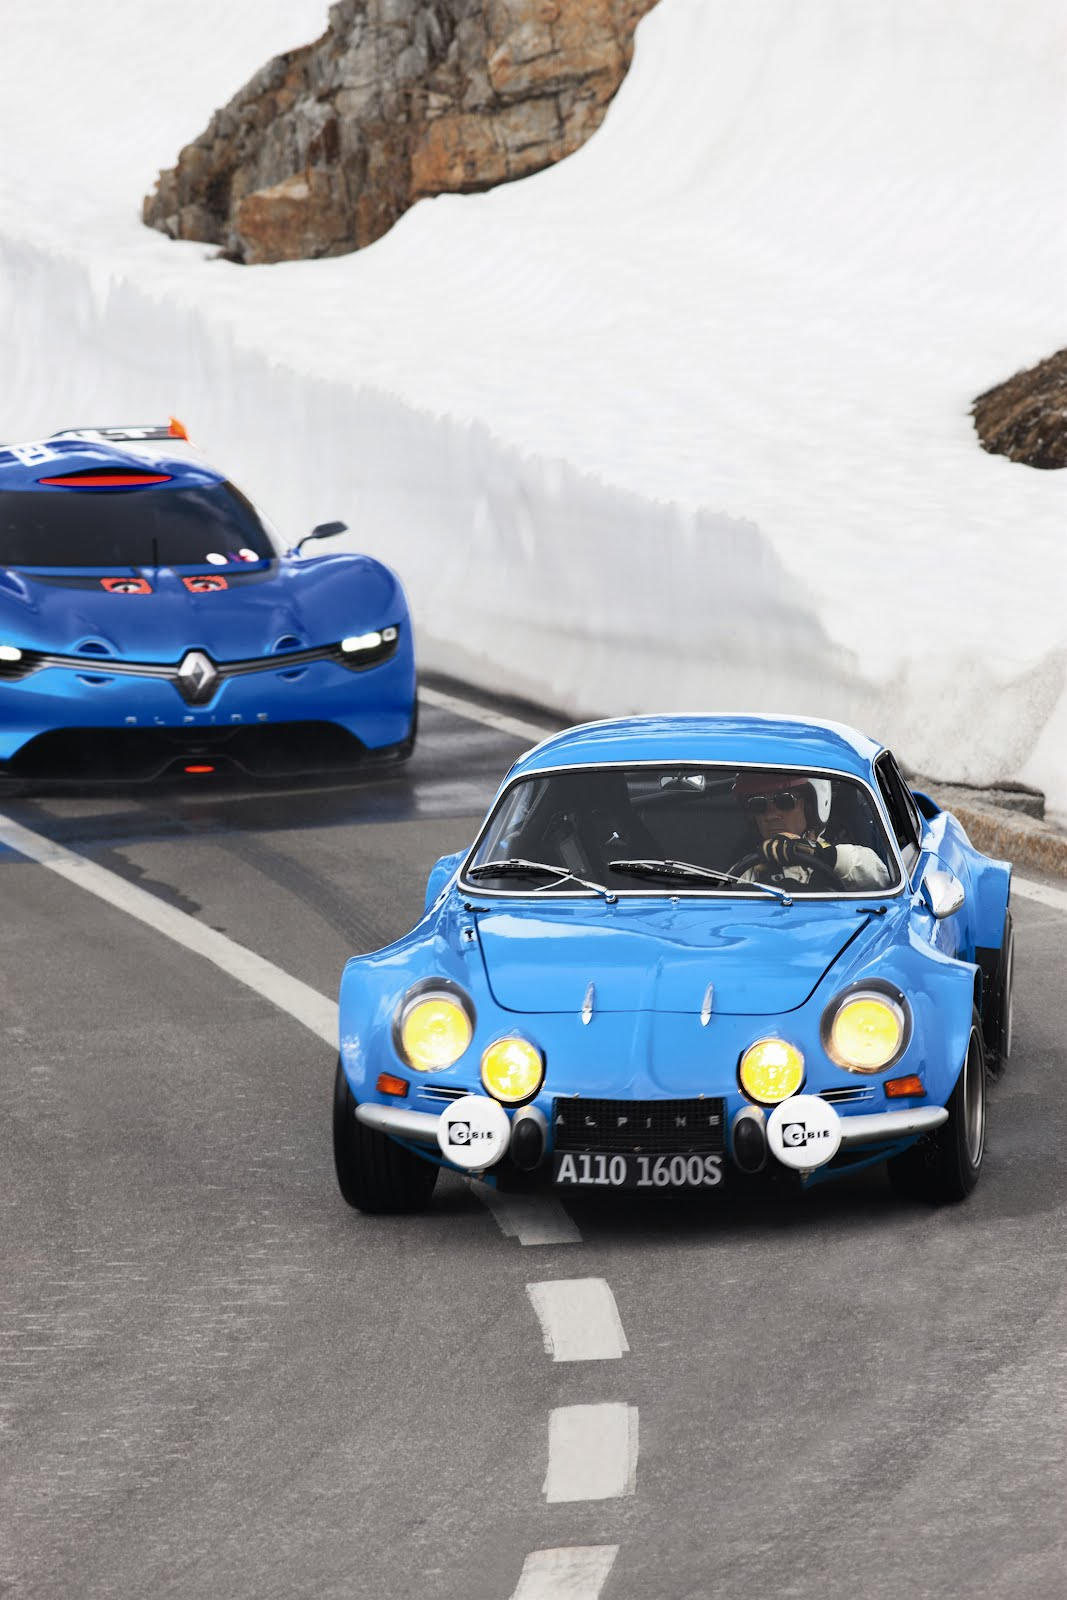 renault alpine a110 50 vs renault alpine a110 photos greek renault news. Black Bedroom Furniture Sets. Home Design Ideas